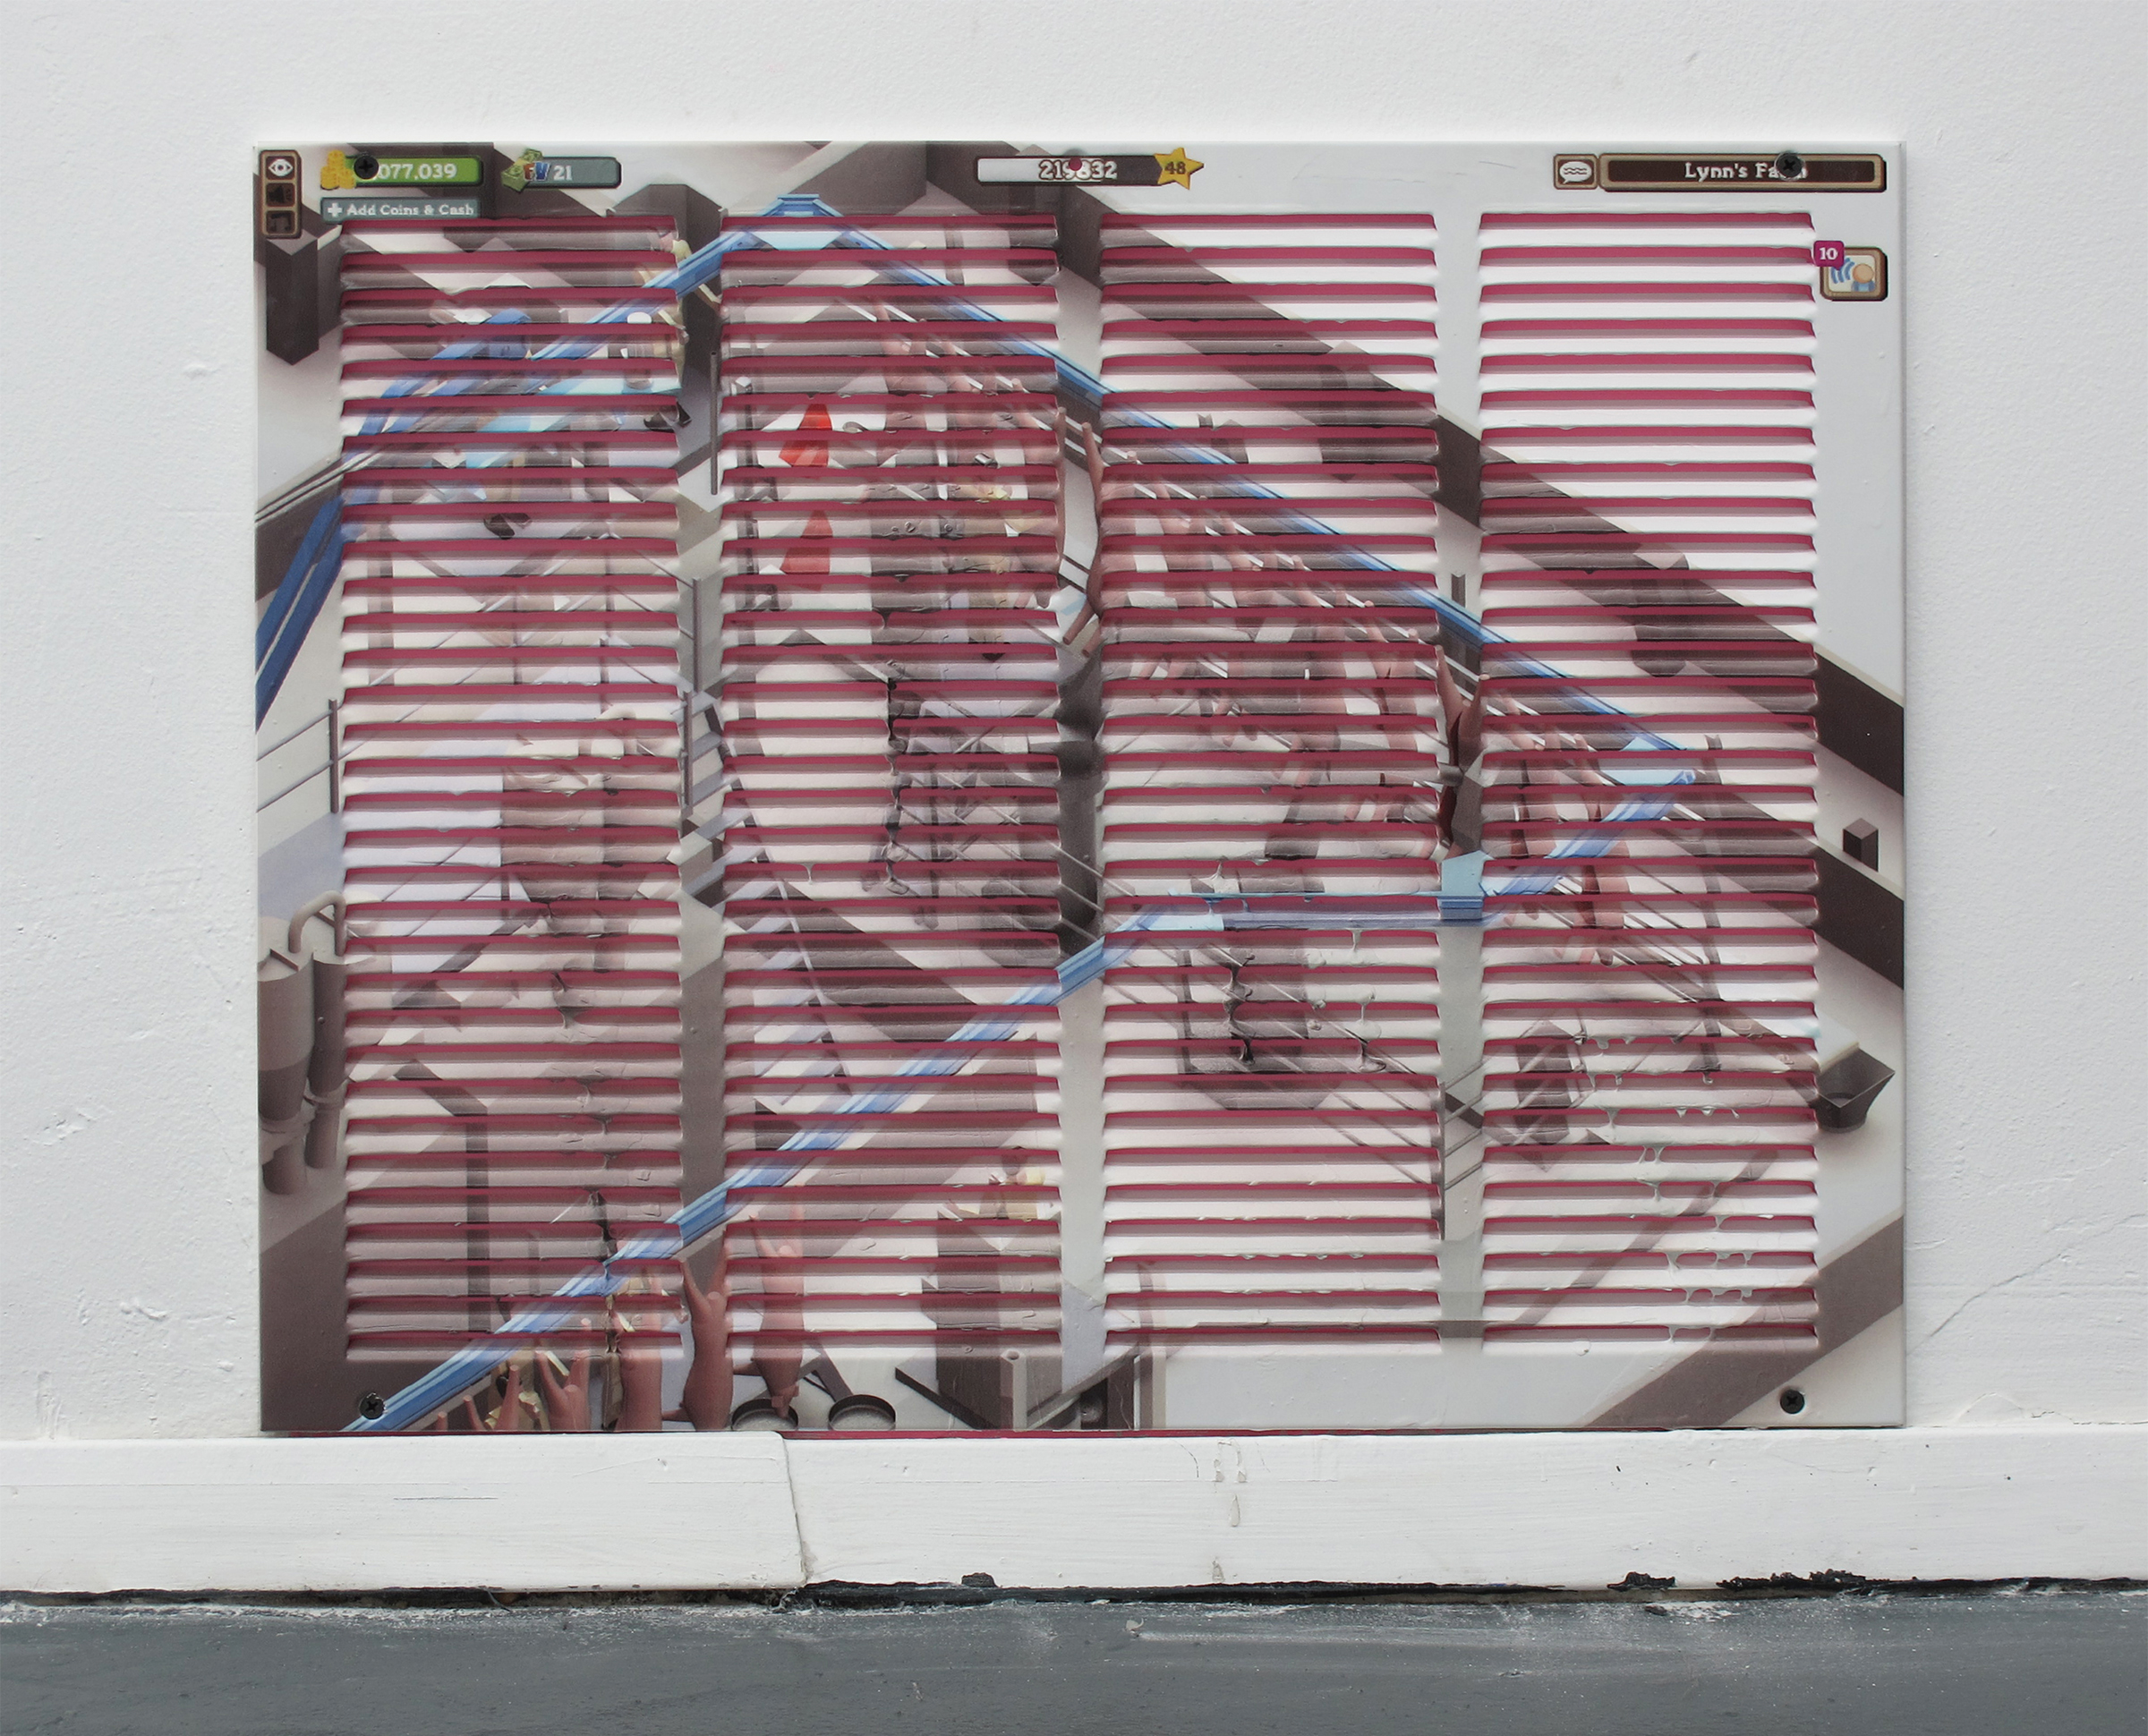 Michael Assiff,  Vent (Automated Slaughter House) , 2015, inkjet print and latex on powder coated steel, 21.75 x 21.75 inches